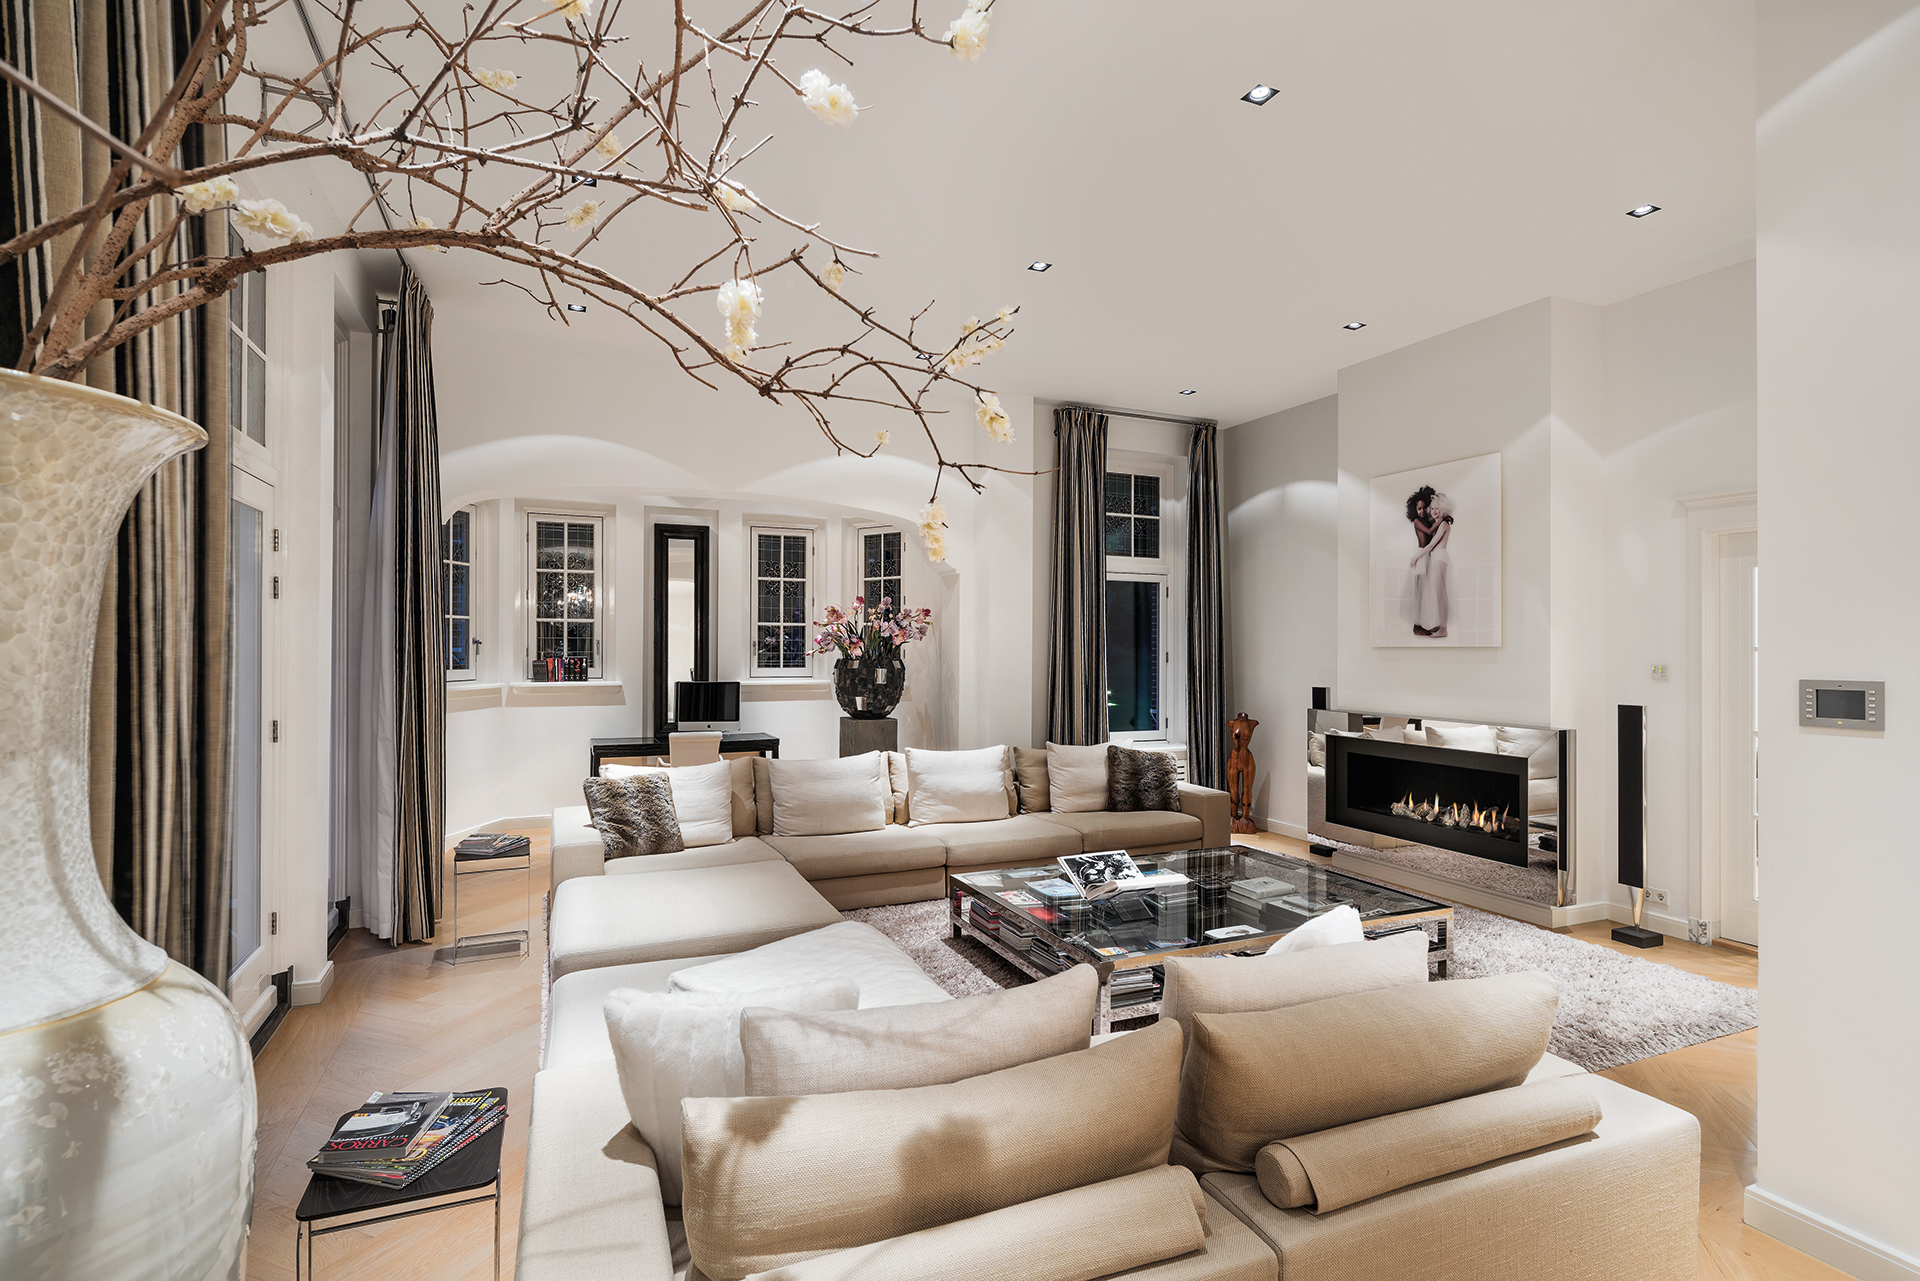 beige furnished living room with two large corner sofas around a modern fireplace